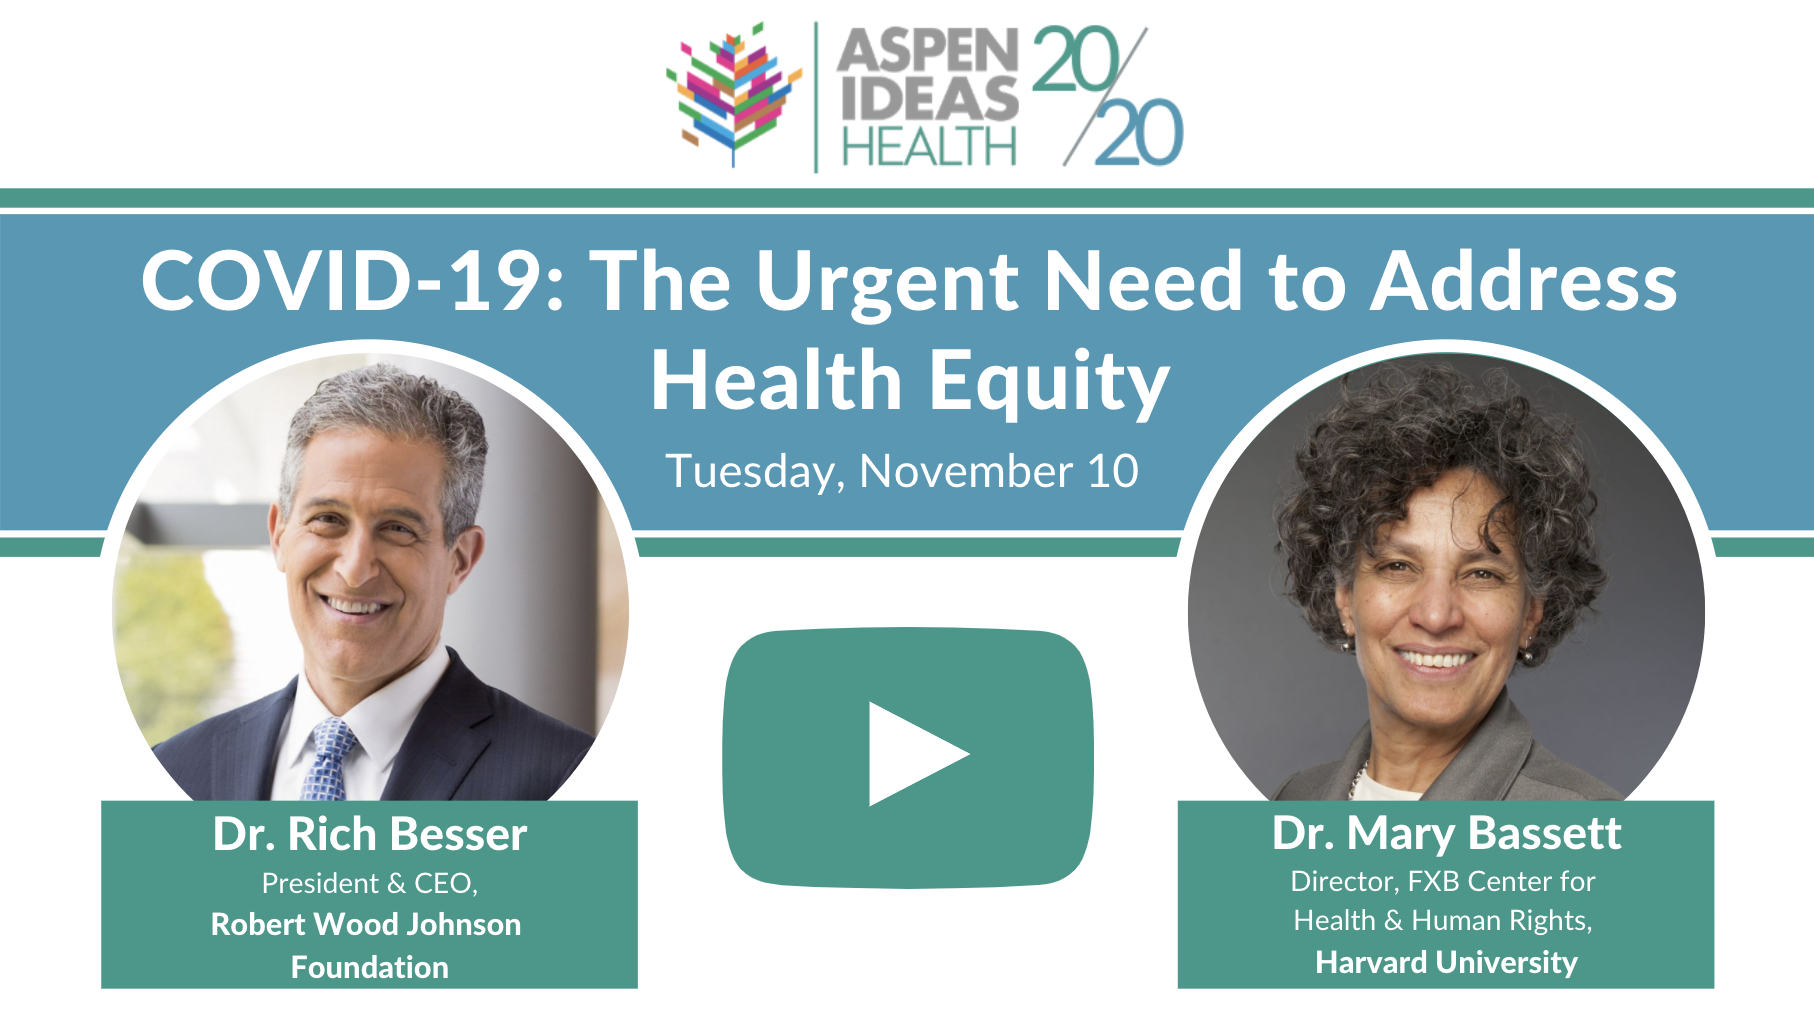 The Urgent Need to Address Health Equity in the Age of COVID